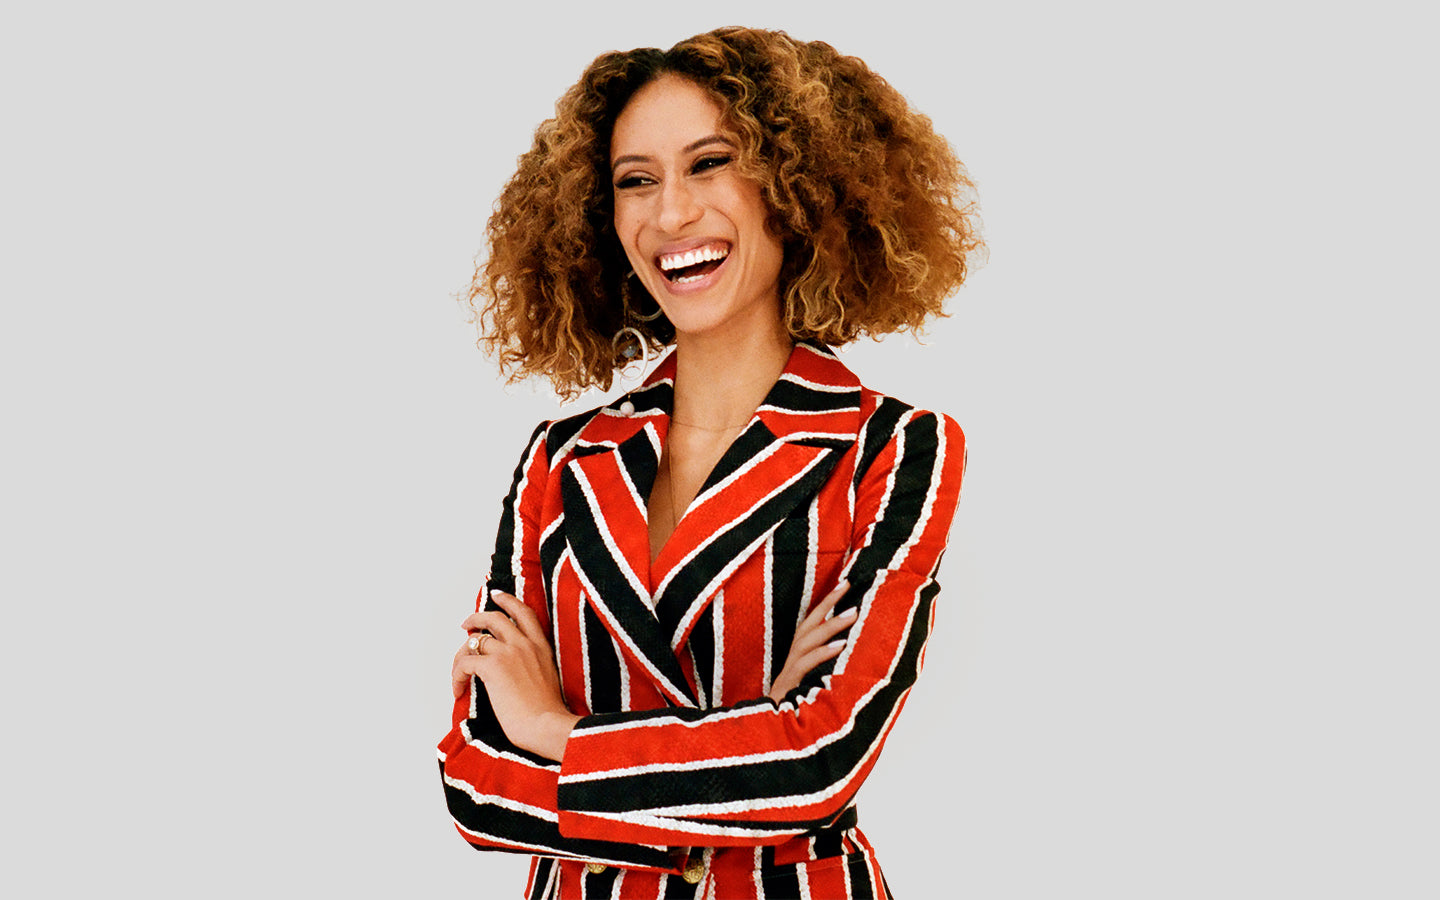 Elaine Welteroth Spills the Secret to Writing a New York Times Best Seller